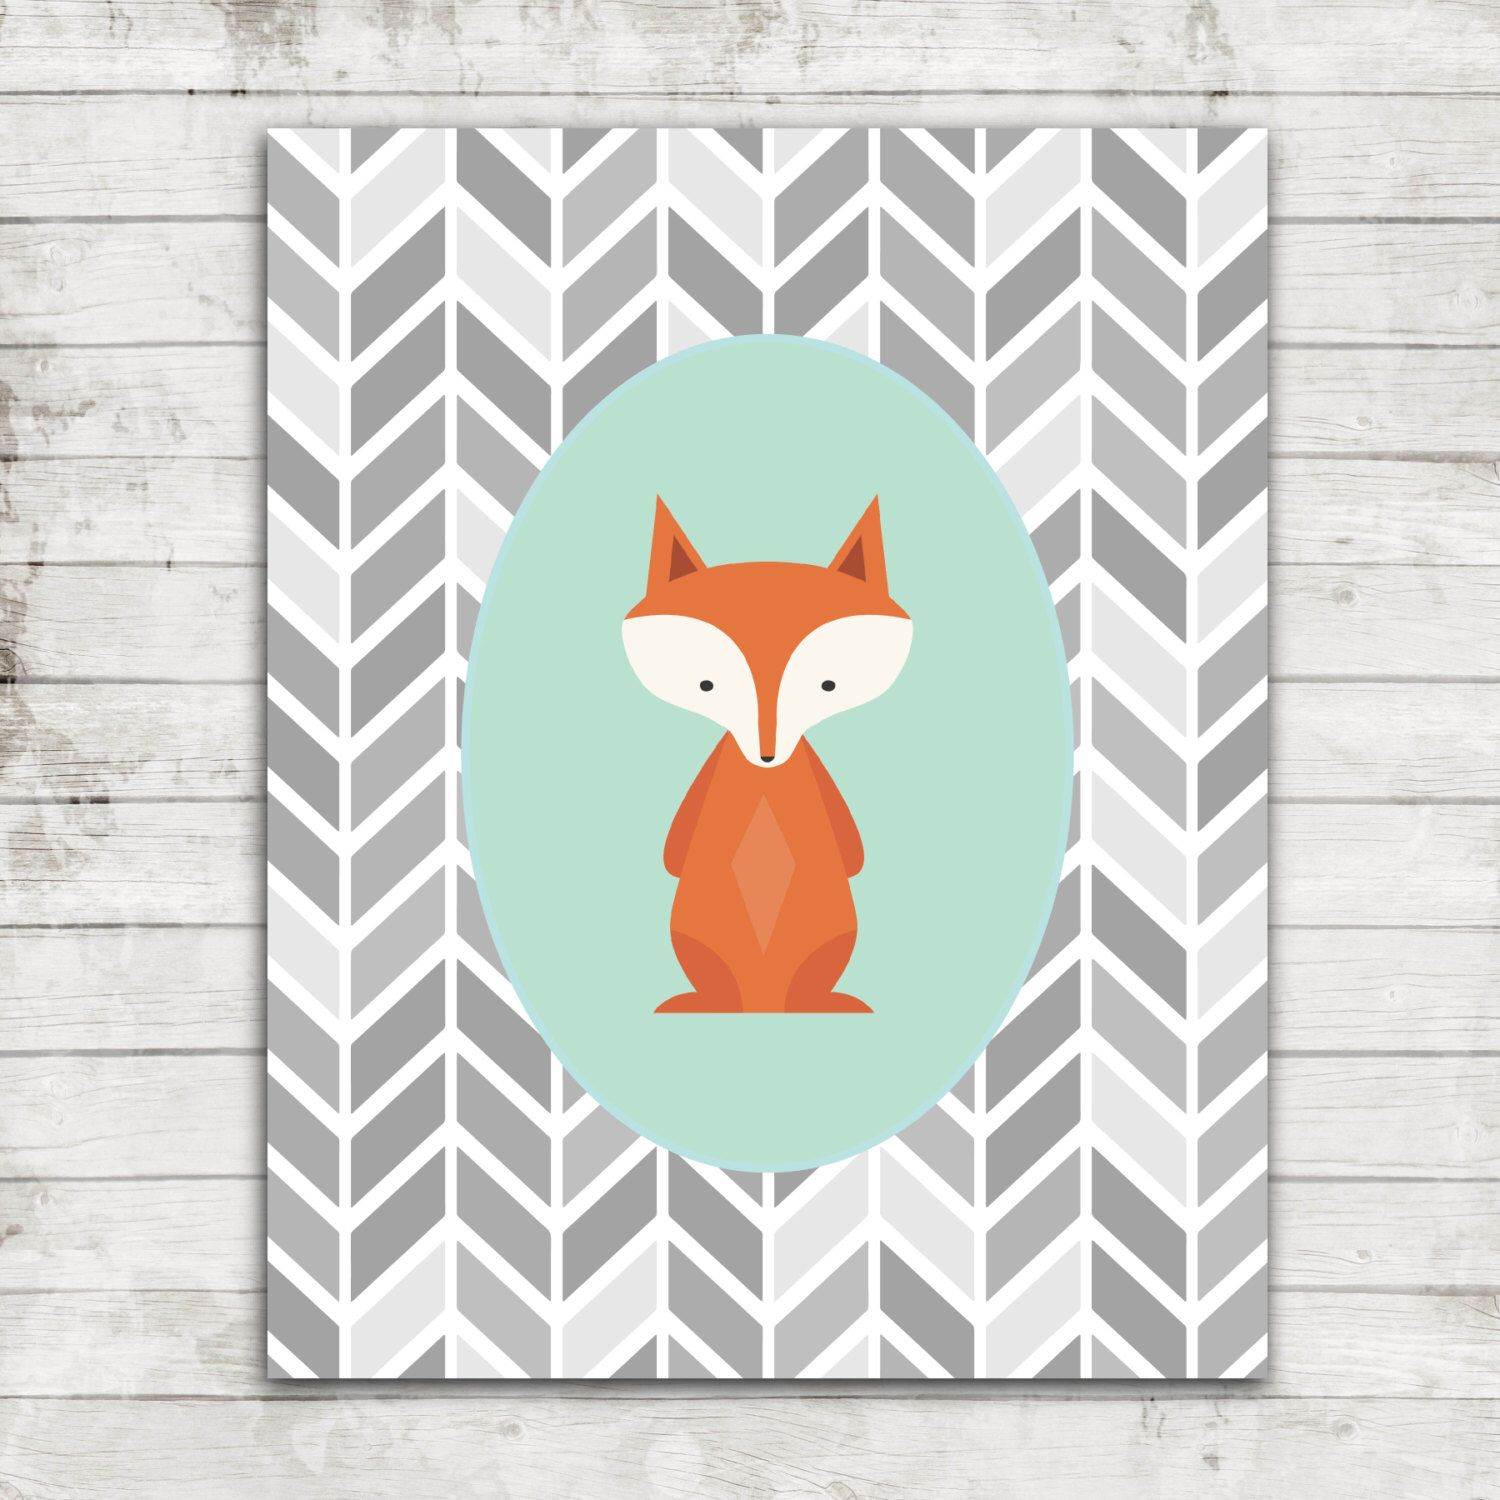 Elephant nursery wall art print mom baby dad by rizzleandrugee - Cute Woodland Fox With Mint Green And Trendy Grey Arrow Backgound Nursery Children S Printable Art For 8x10 Print 225